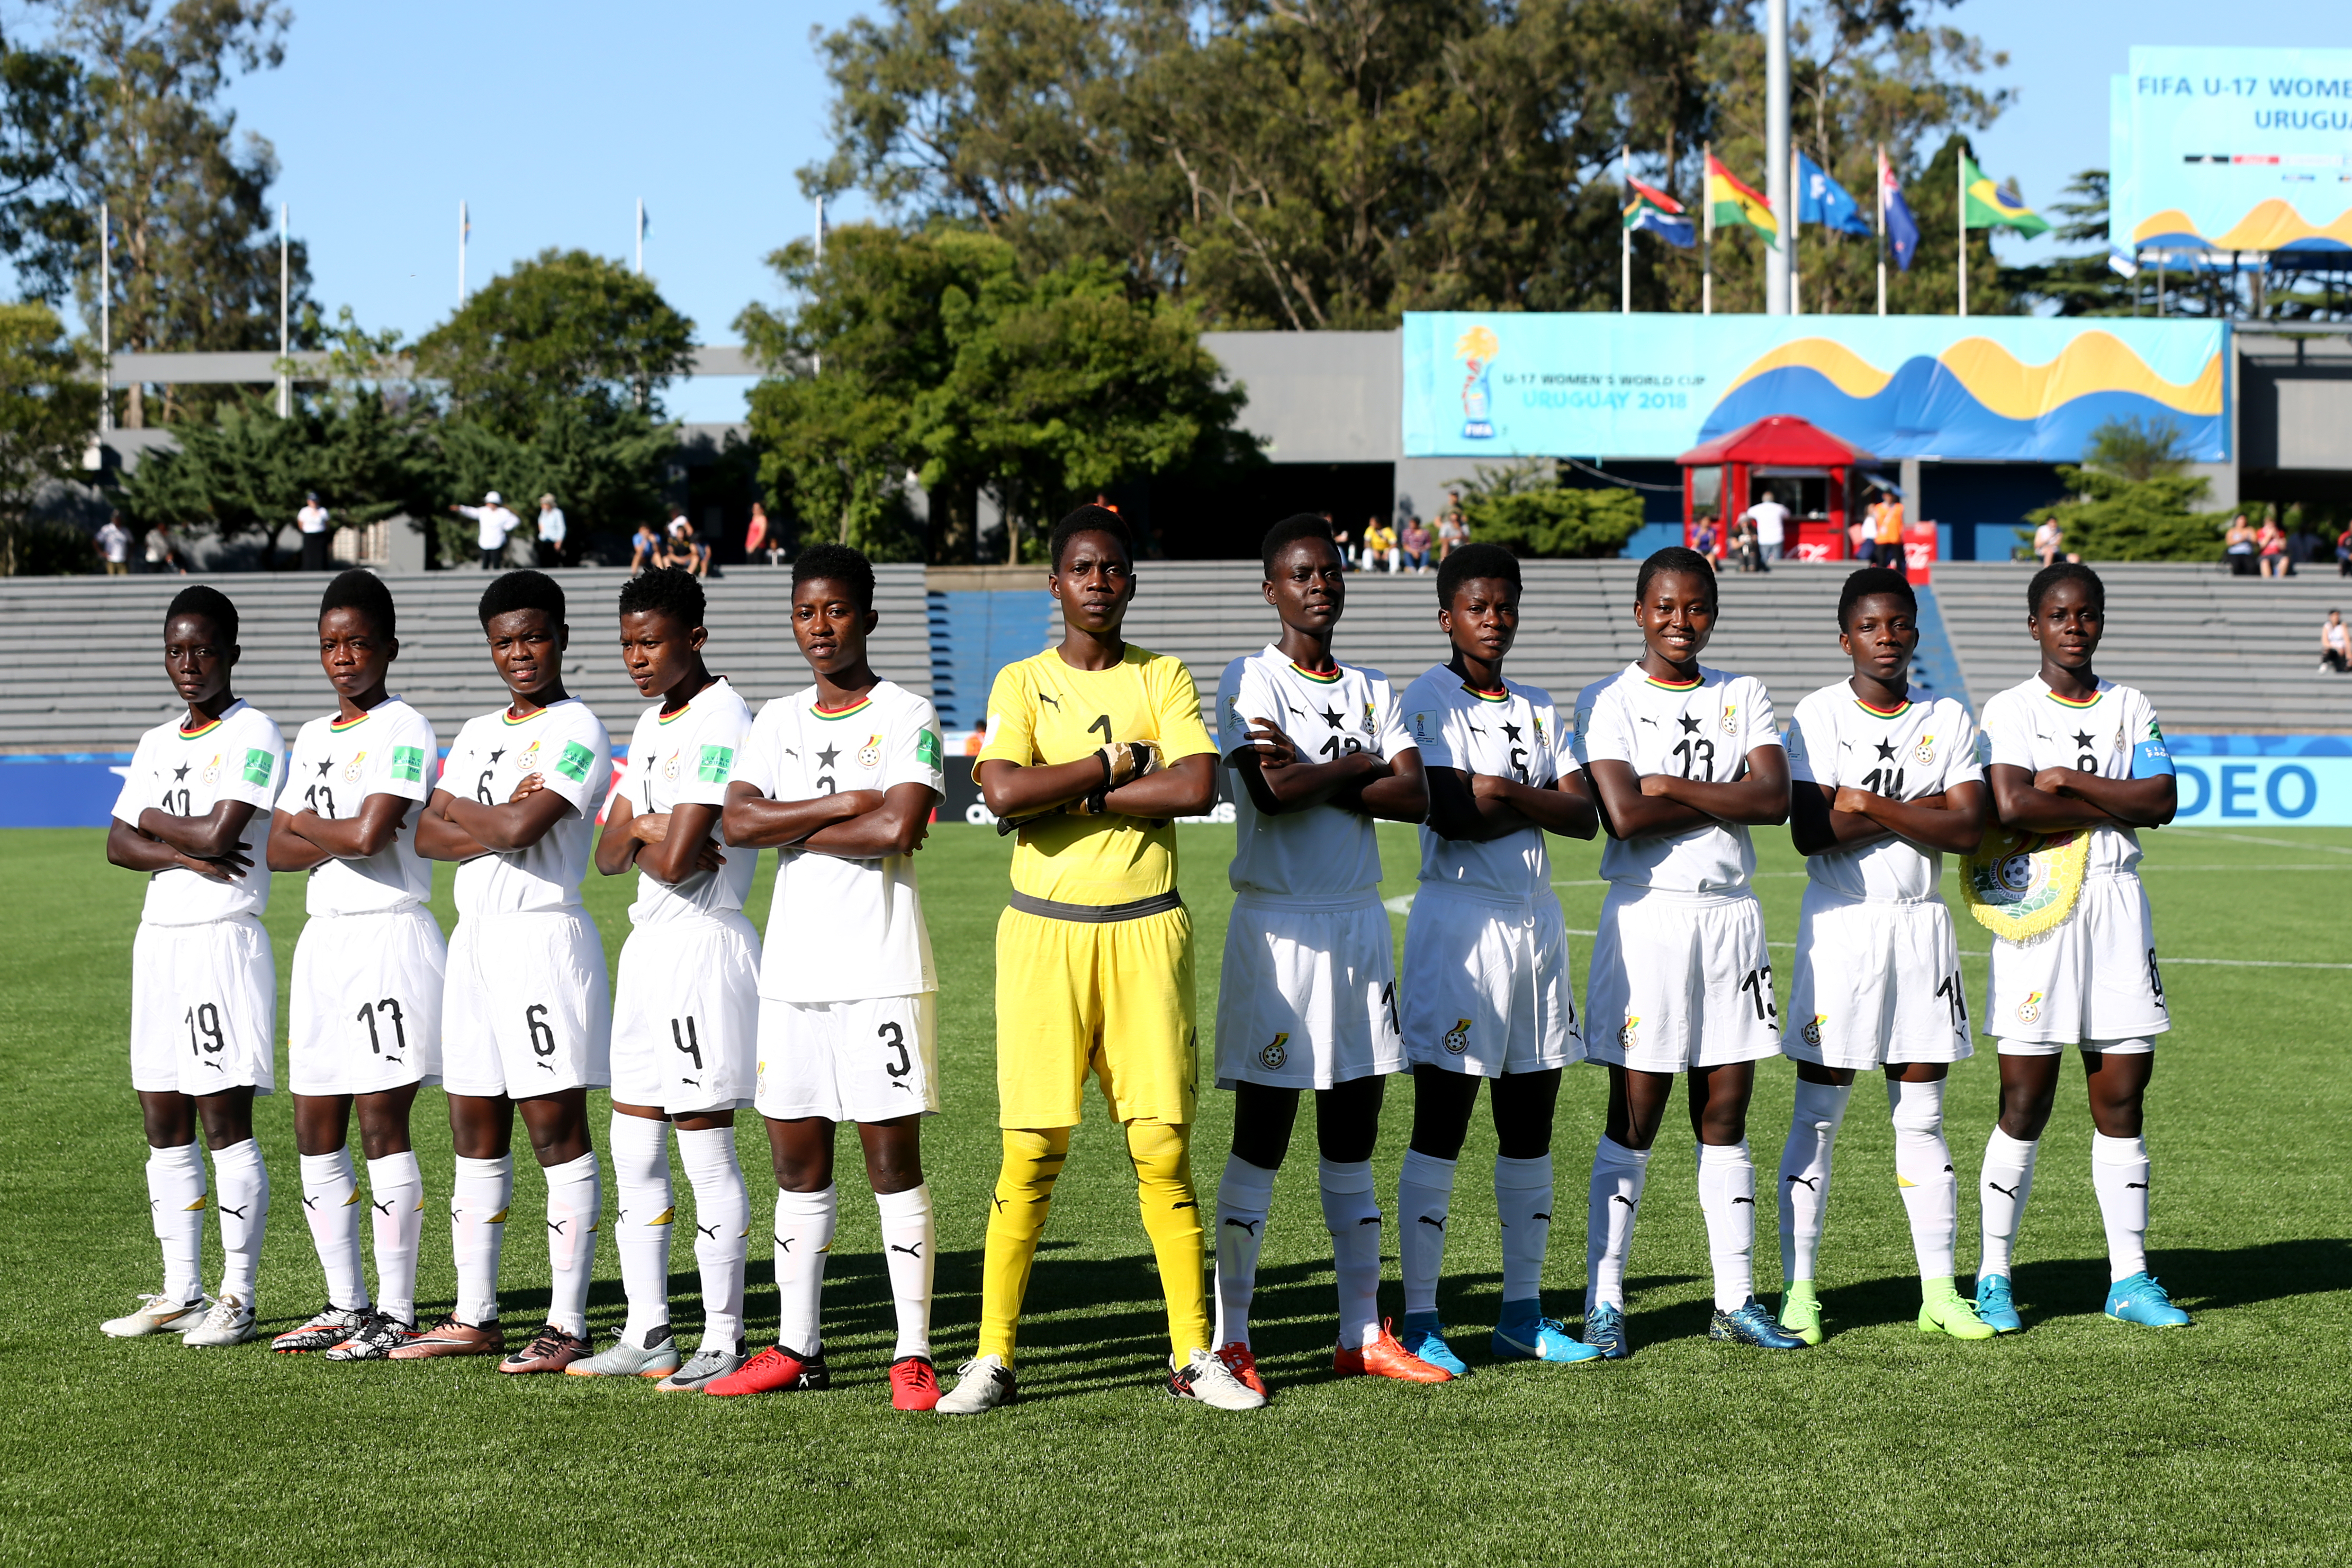 U17WW: Ghana XI for quarterfinals clash against Mexico